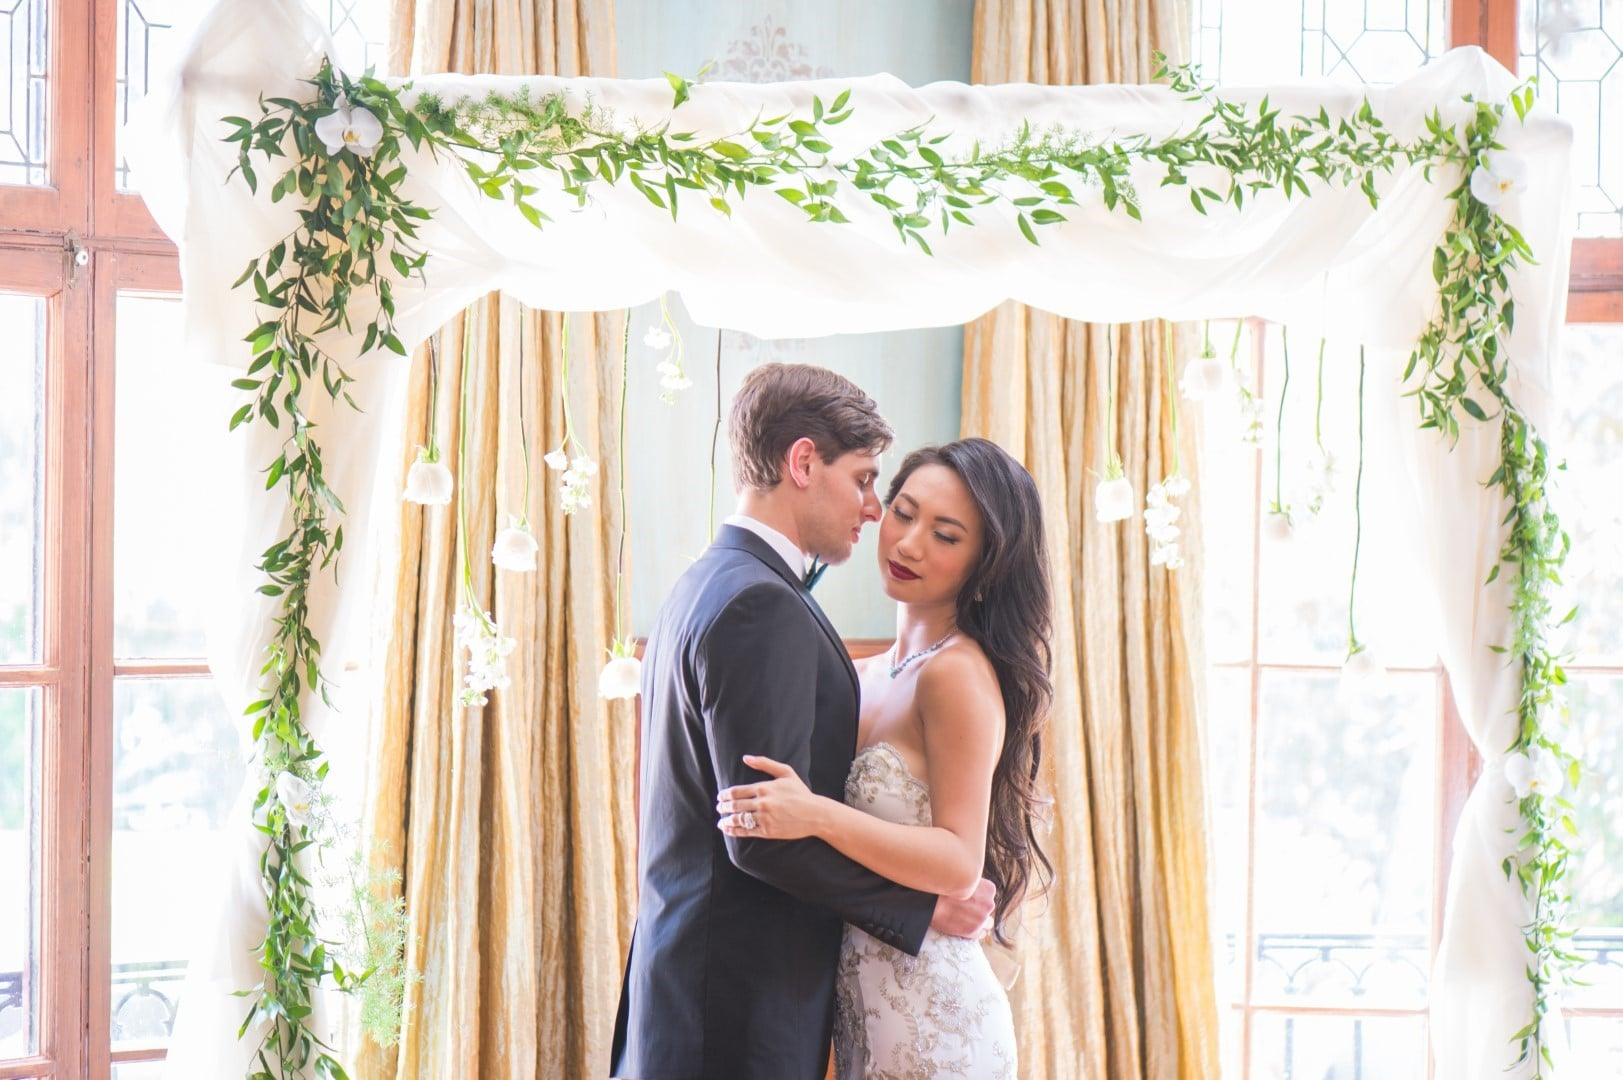 Pearl-White-Events-Bride and Groom standing under square greenery back drop with lights